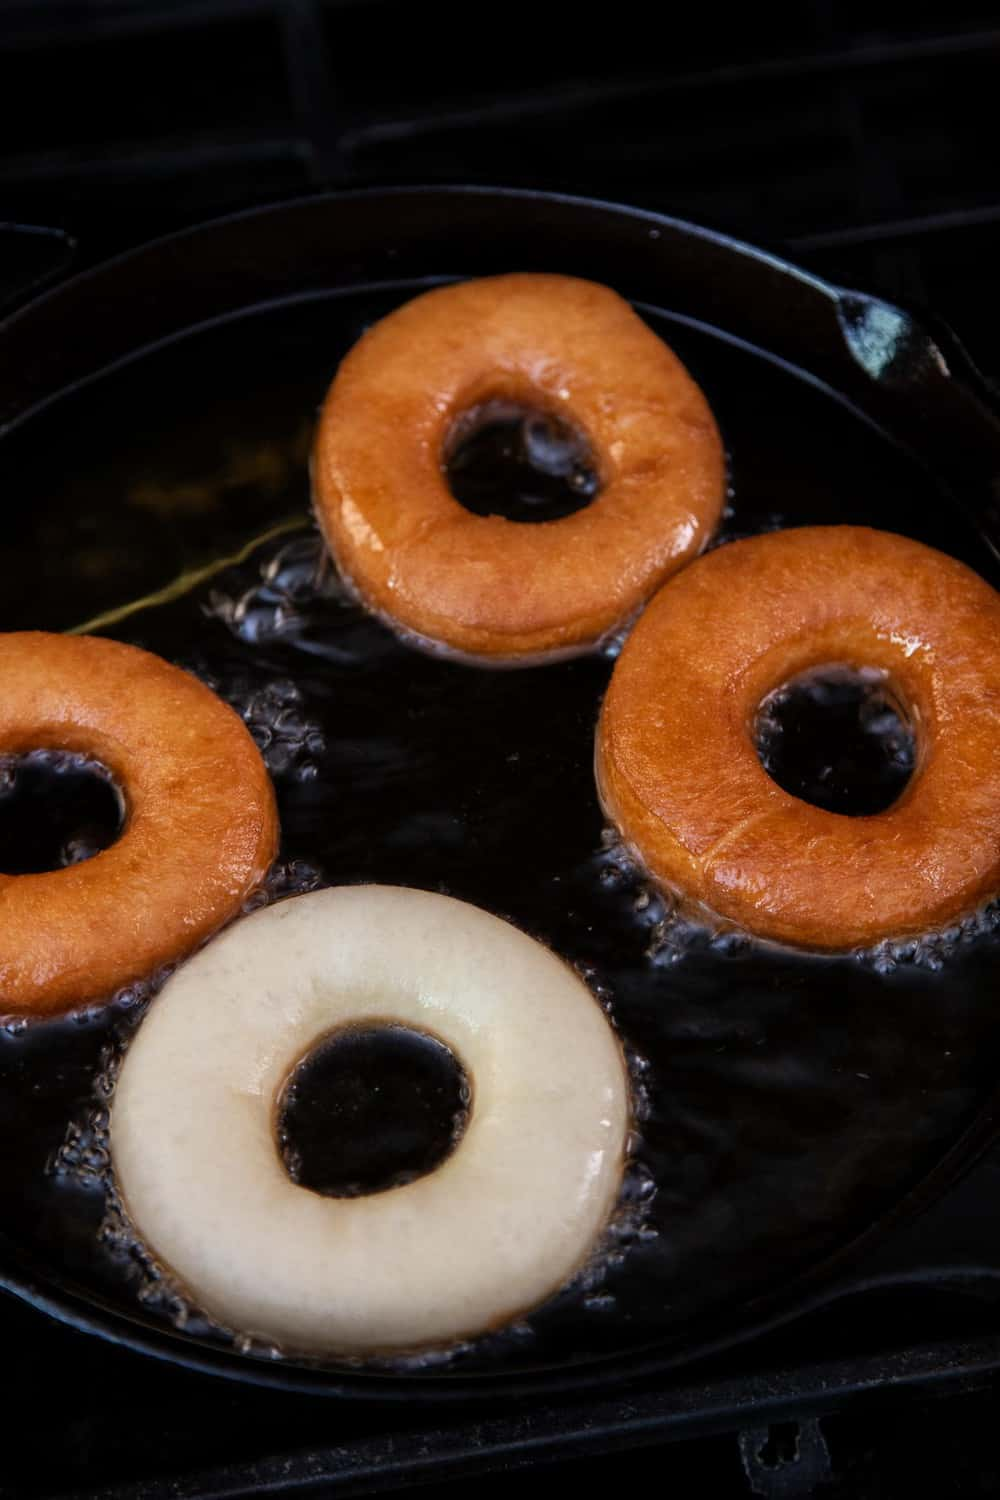 Frying donuts in a cast iron pan